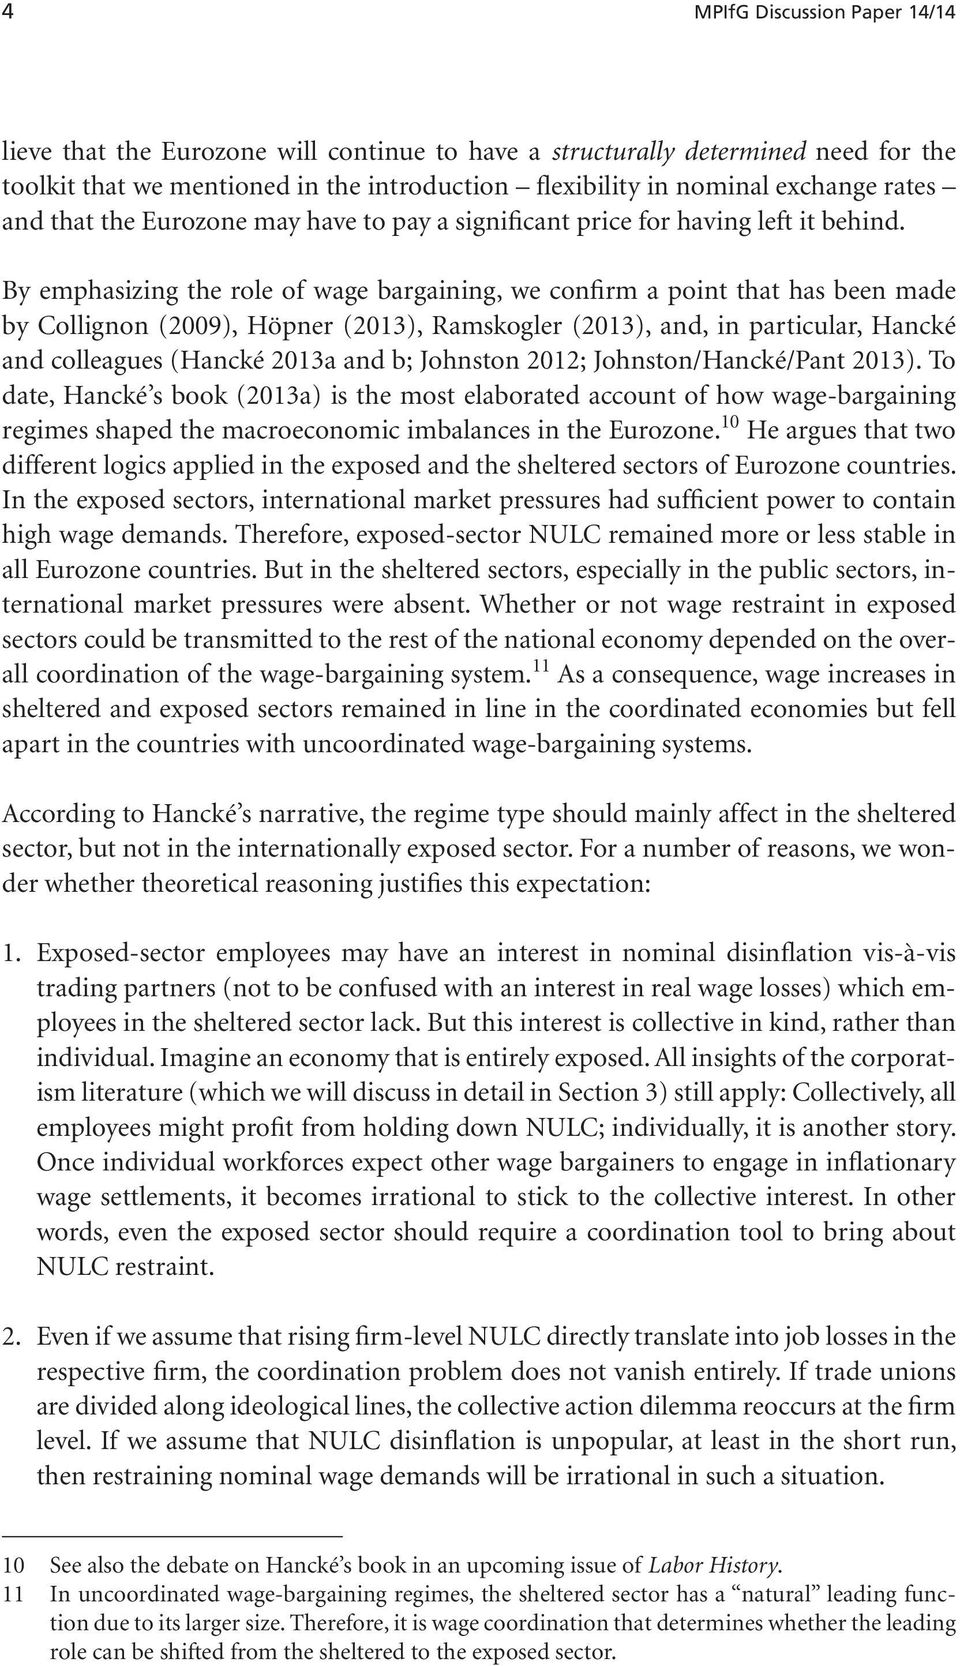 By emphasizing the role of wage bargaining, we confirm a point that has been made by Collignon (2009), Höpner (2013), Ramskogler (2013), and, in particular, Hancké and colleagues (Hancké 2013a and b;